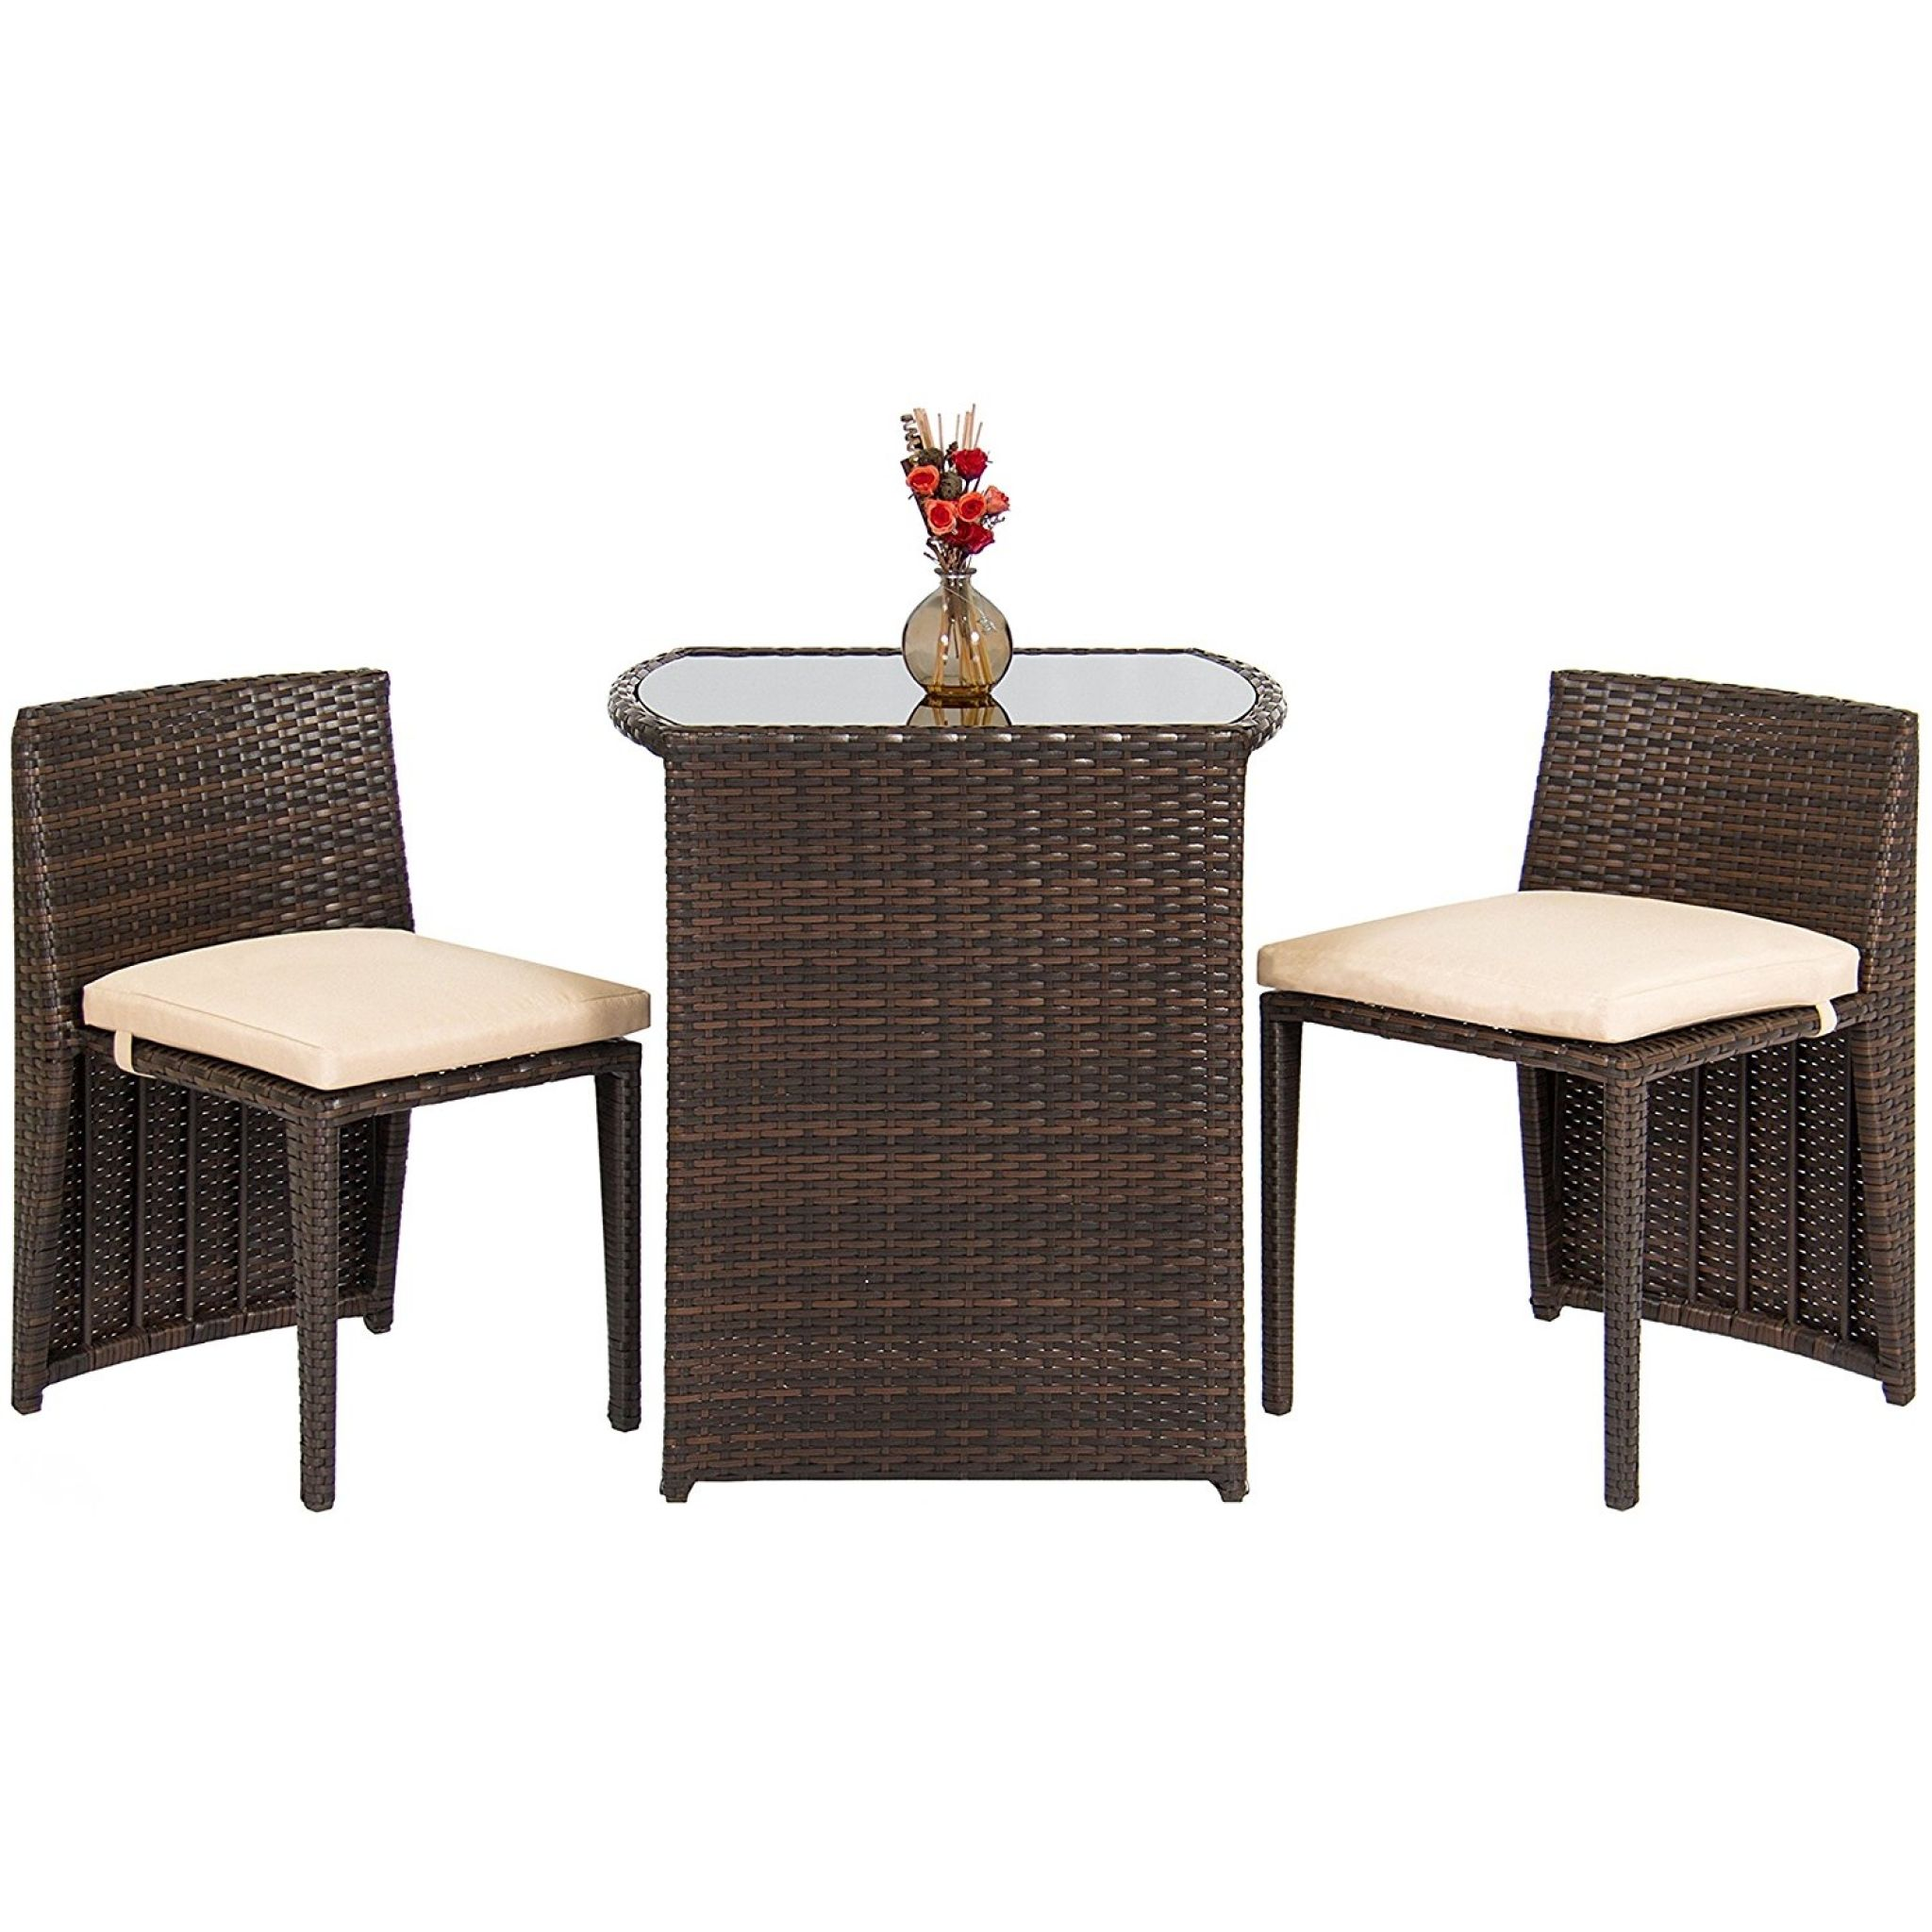 Tj Maxx Outdoor Furniture   Most Popular Interior Paint Colors Check More  At Http:/